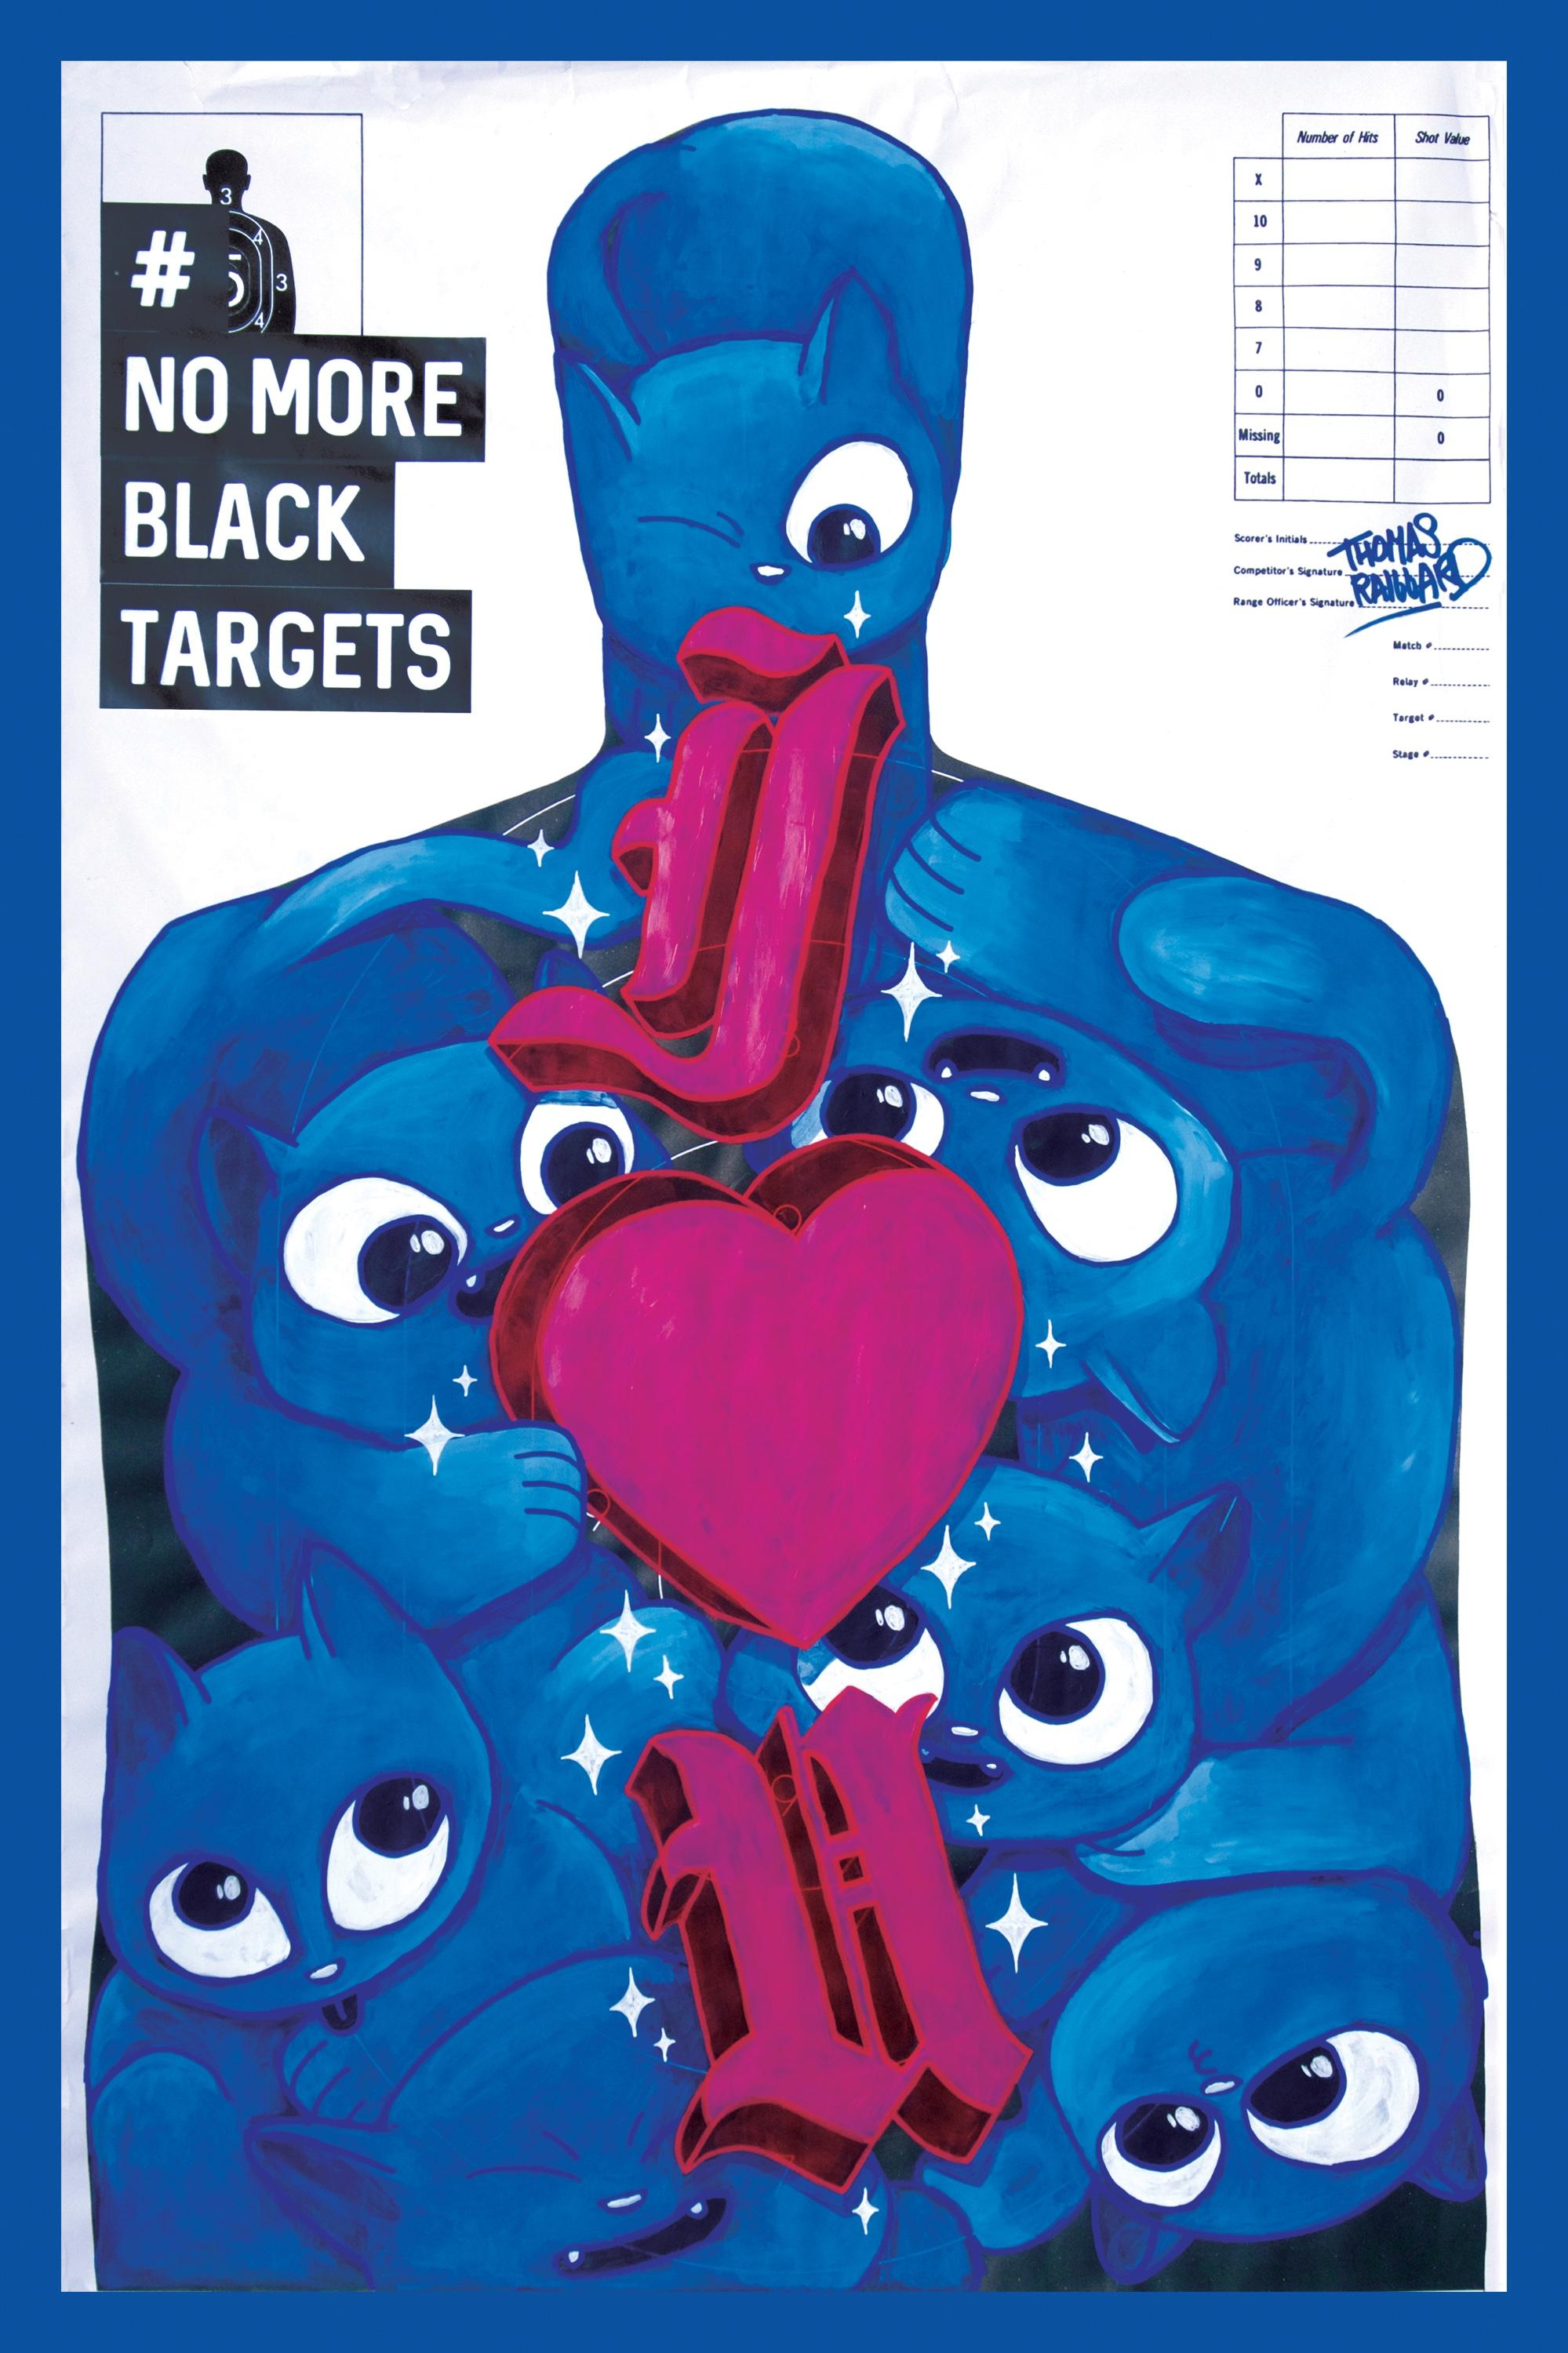 New York Society for Ethical Culture Integrated Ad - #Nomoreblacktargets